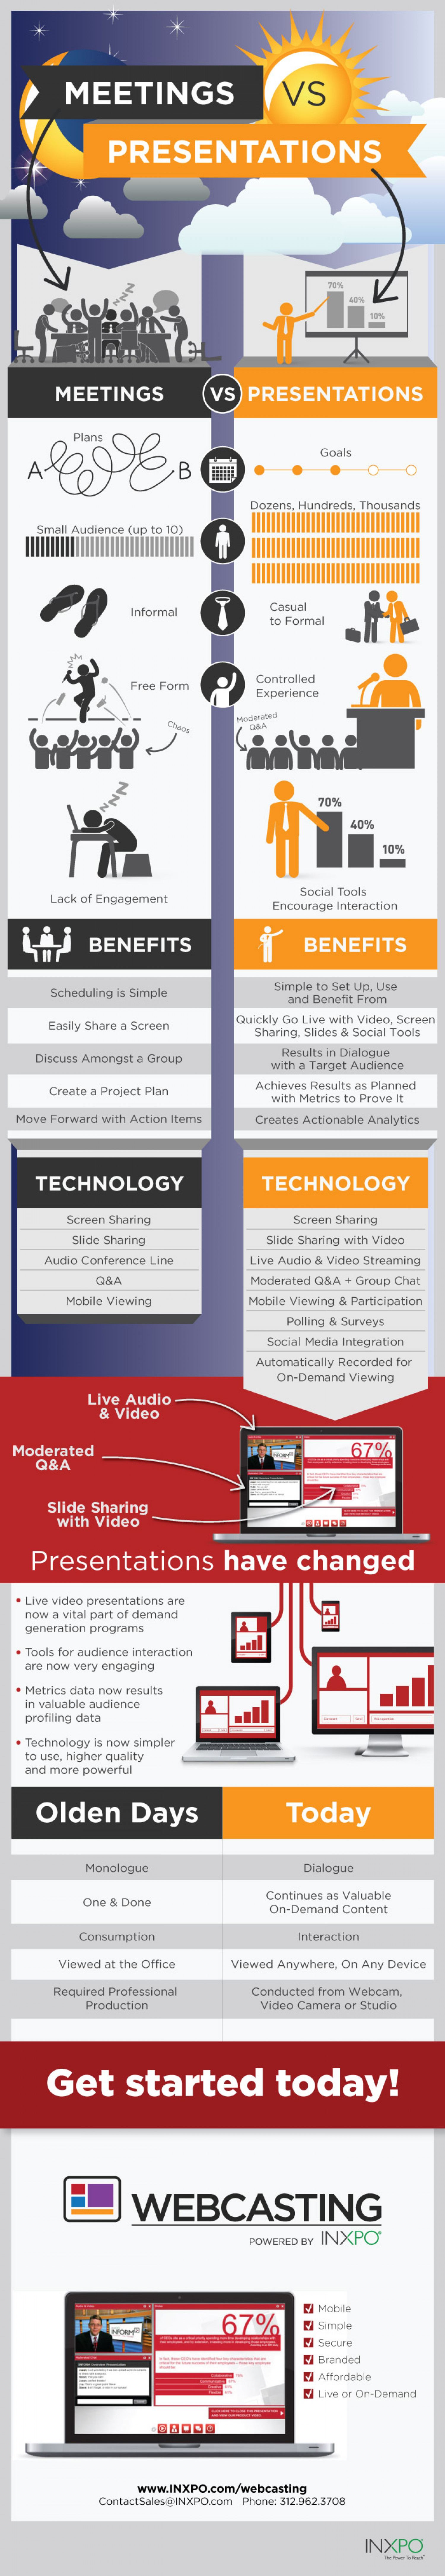 Comparing Business Meetings to Business Presentations Infographic